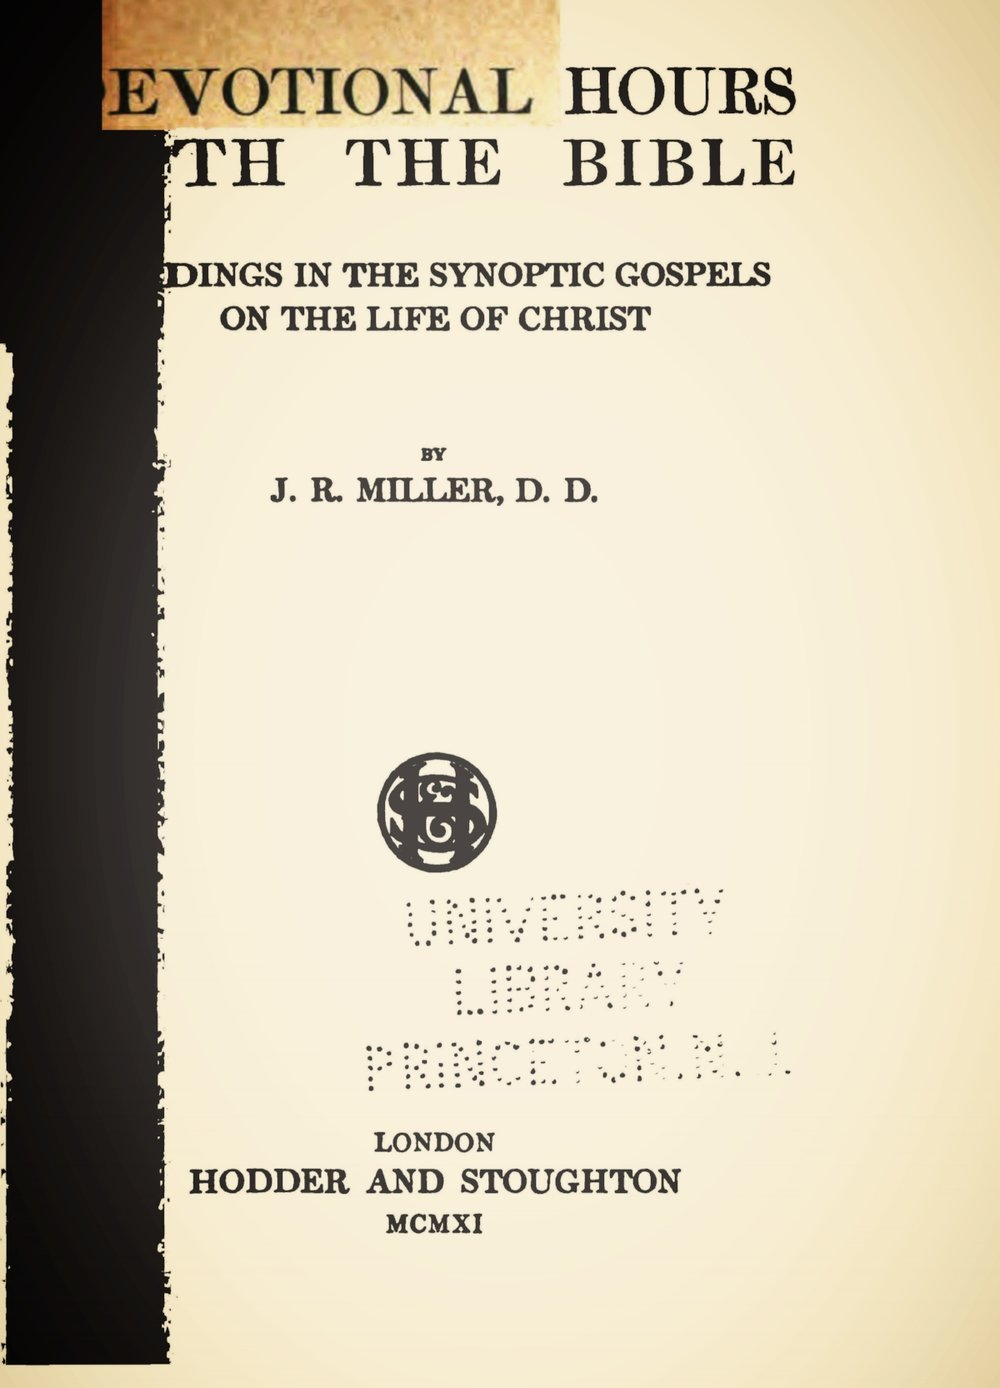 Miller, James Russell, Devotional Hours With the Bible, Vol. 5 Title Page.jpg